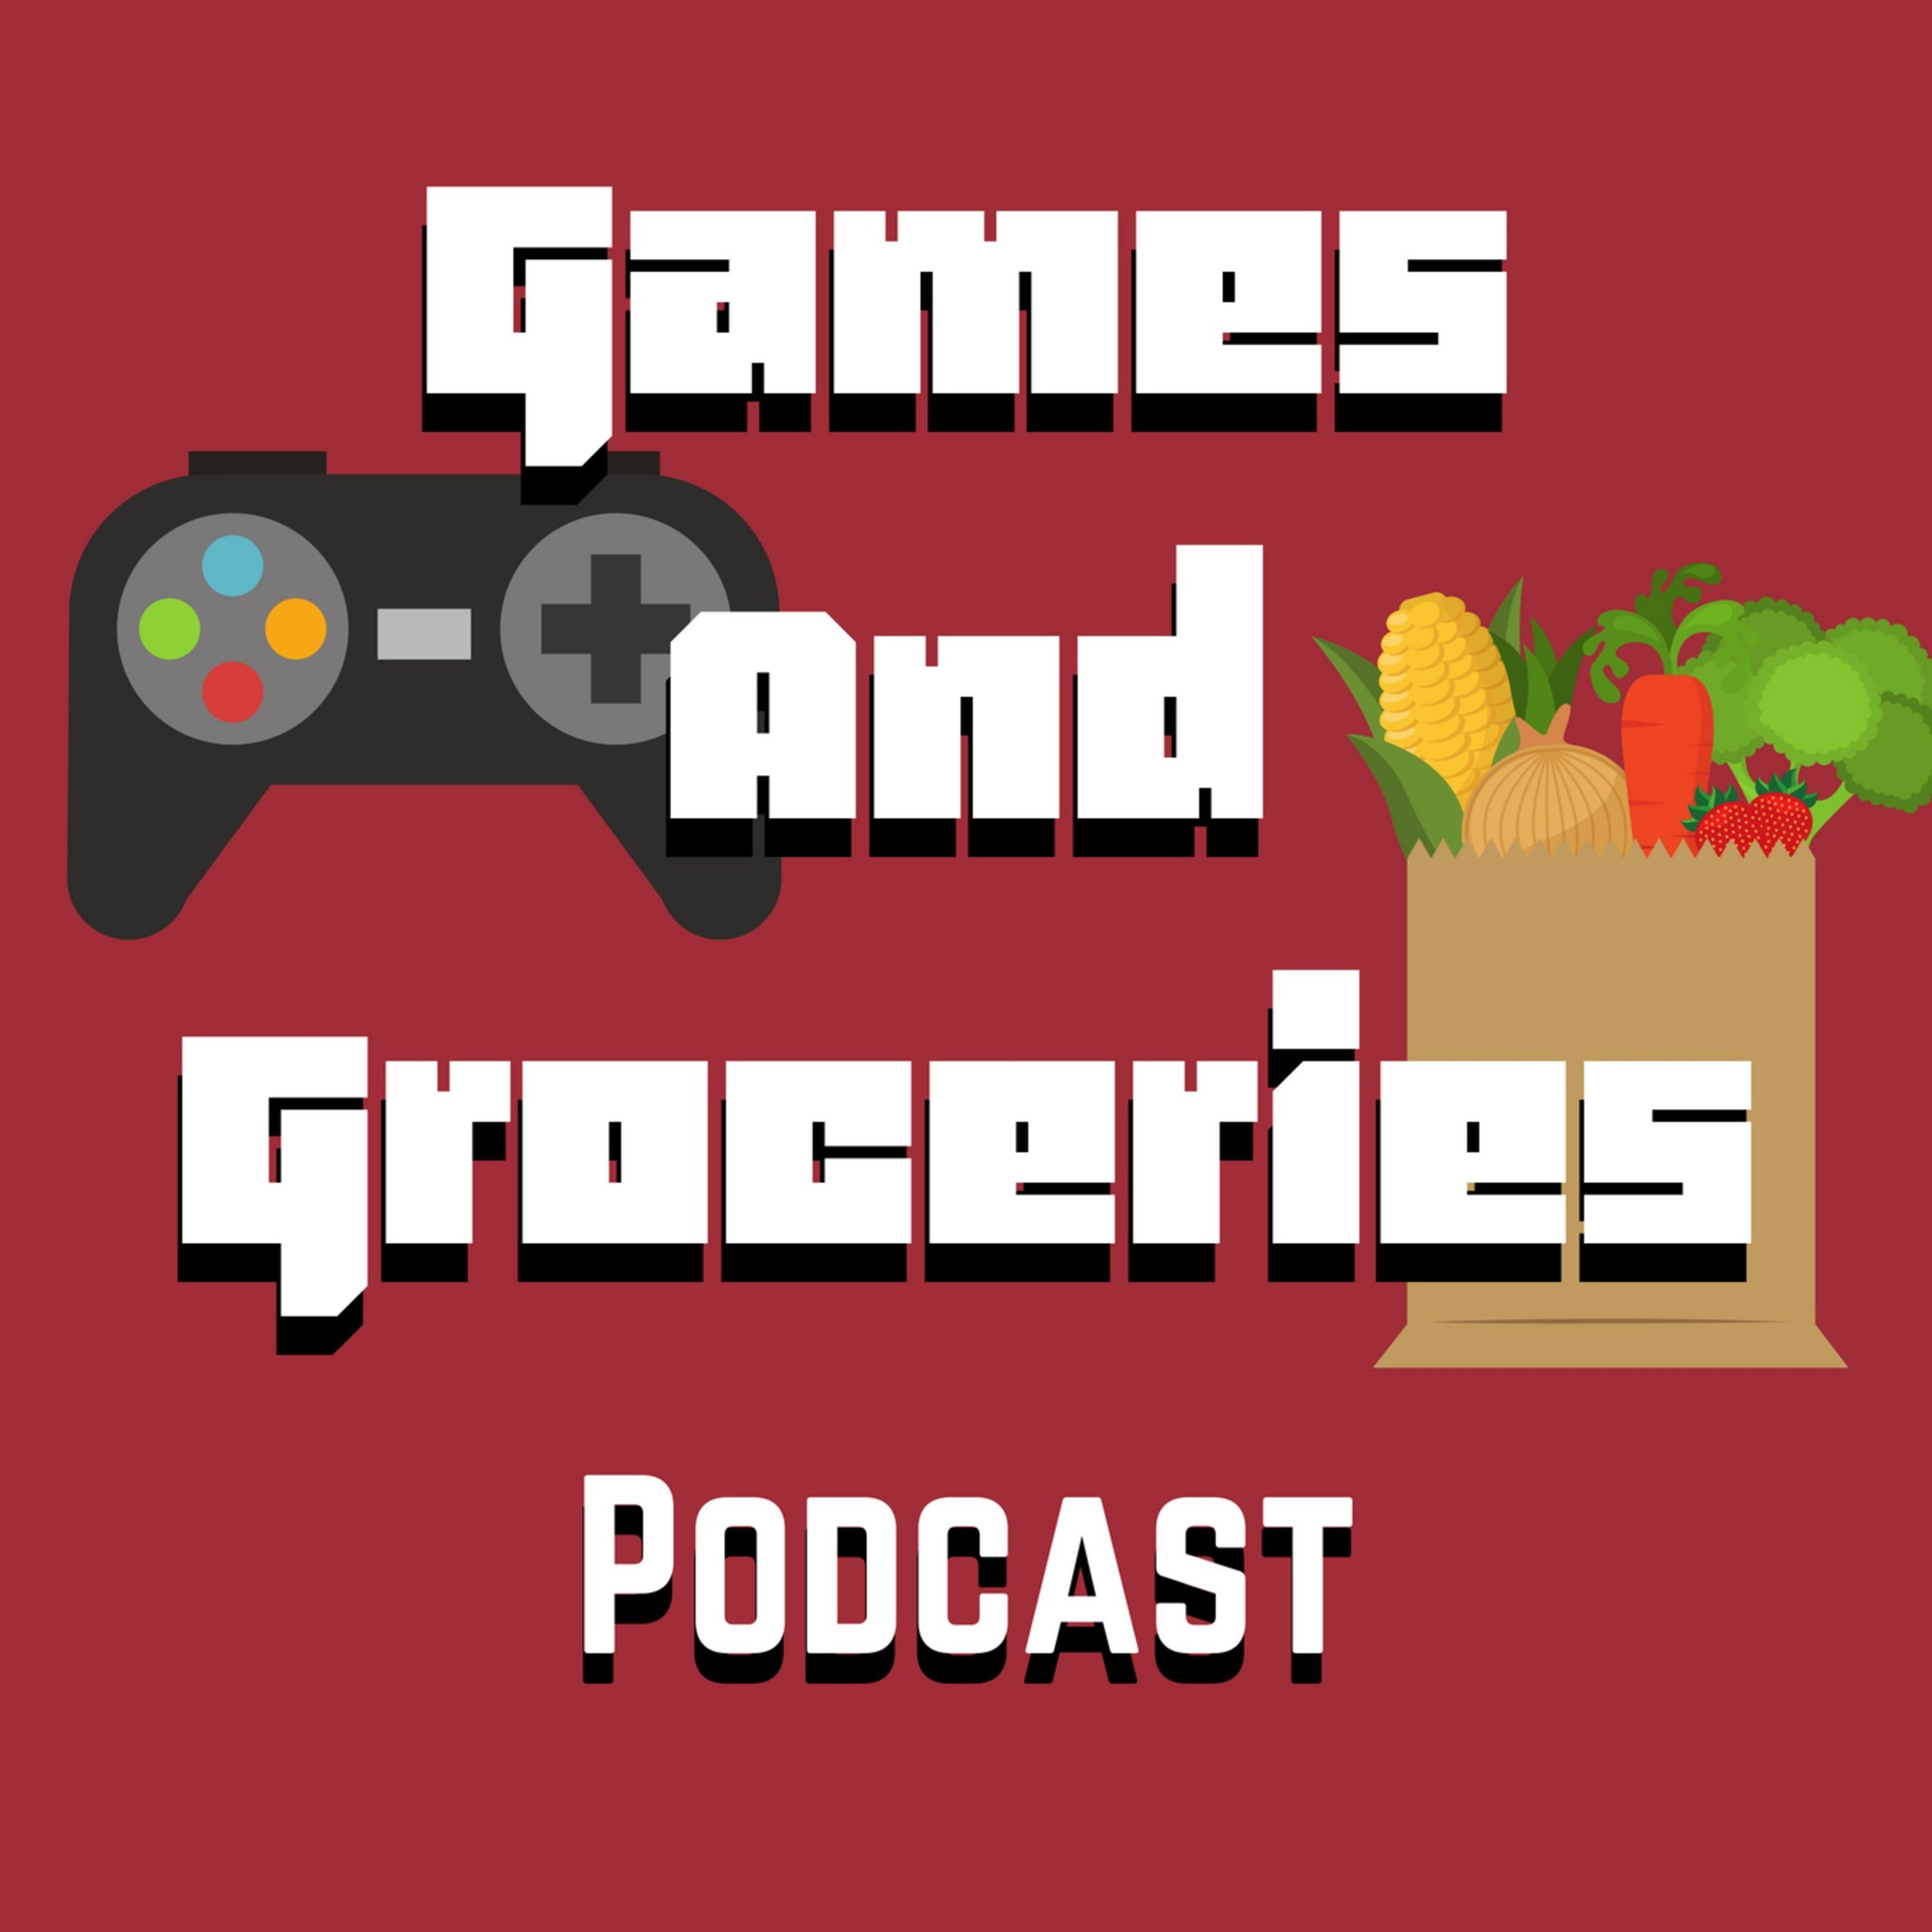 A weekly conversation between married gamers about films, the latest gaming news, and a topic in the gaming industry.